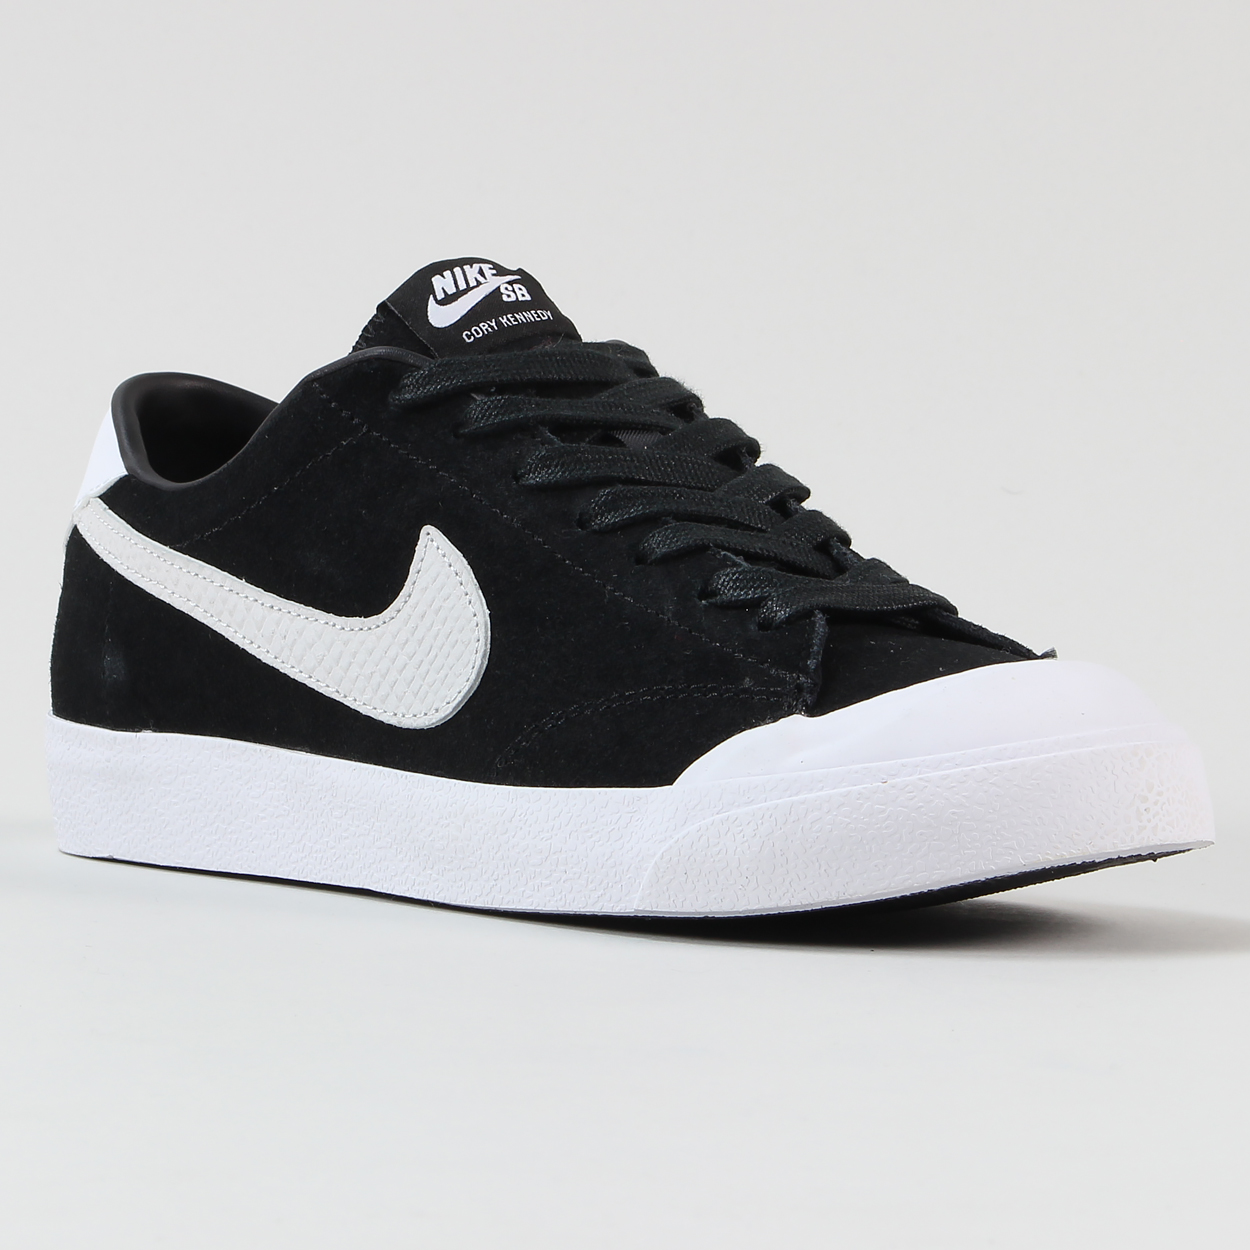 02a660a9d5 A classic low profile design designed by Cory Kennedy and built by Nike SB  for serious shreddage and gnarls. The Zoom All Court shoes are ace!